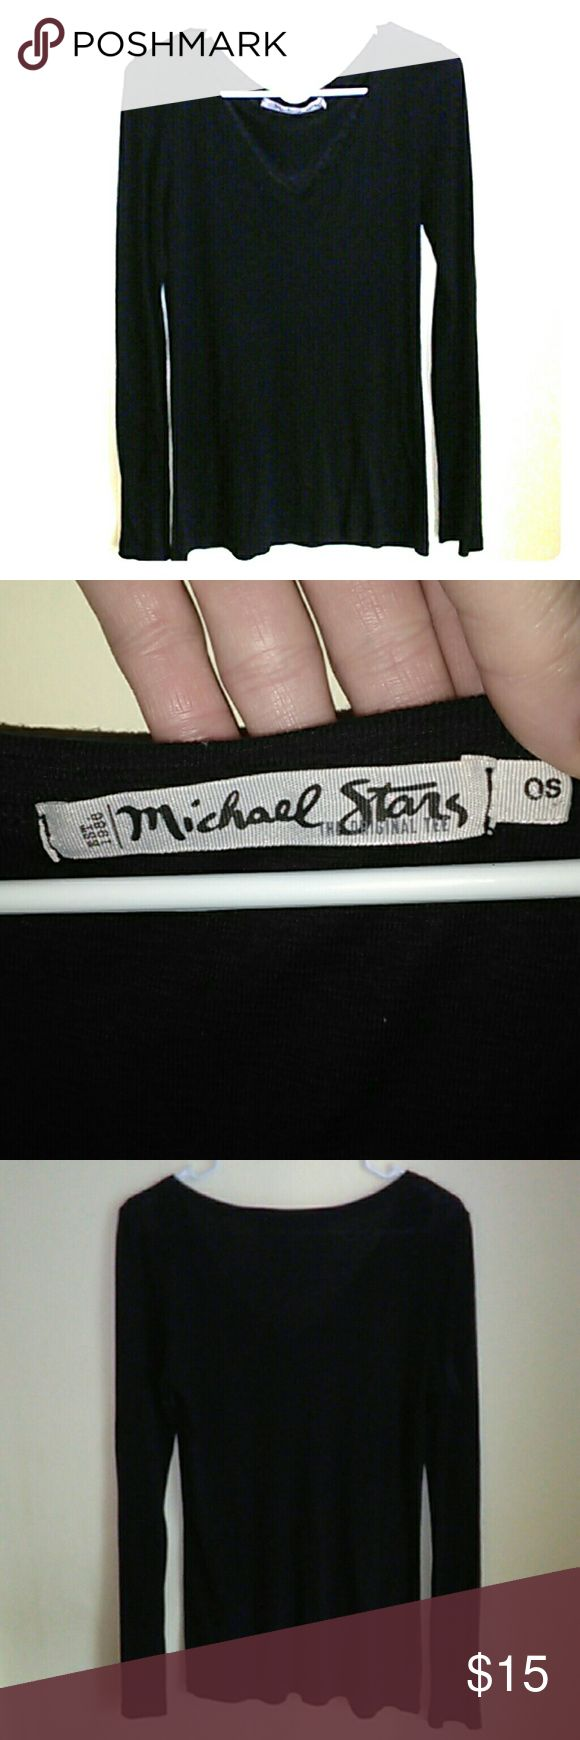 Michael Stars 🌟🌟Black Long Sleeve Top OSFM Michael Stars 🌟🌟Black Long Sleeve Top OSFM. Such a nice, quality made top but I have so many black tops, (including 2 more Michael Stars just like this), that I sadly have to get rid of it. Excellent condition, only worn twice. Says OSFM & I'm a medium in tops and a 36C & it fits me snug but could definitely stretch to fit a large. Michael Stars Tops Tees - Long Sleeve